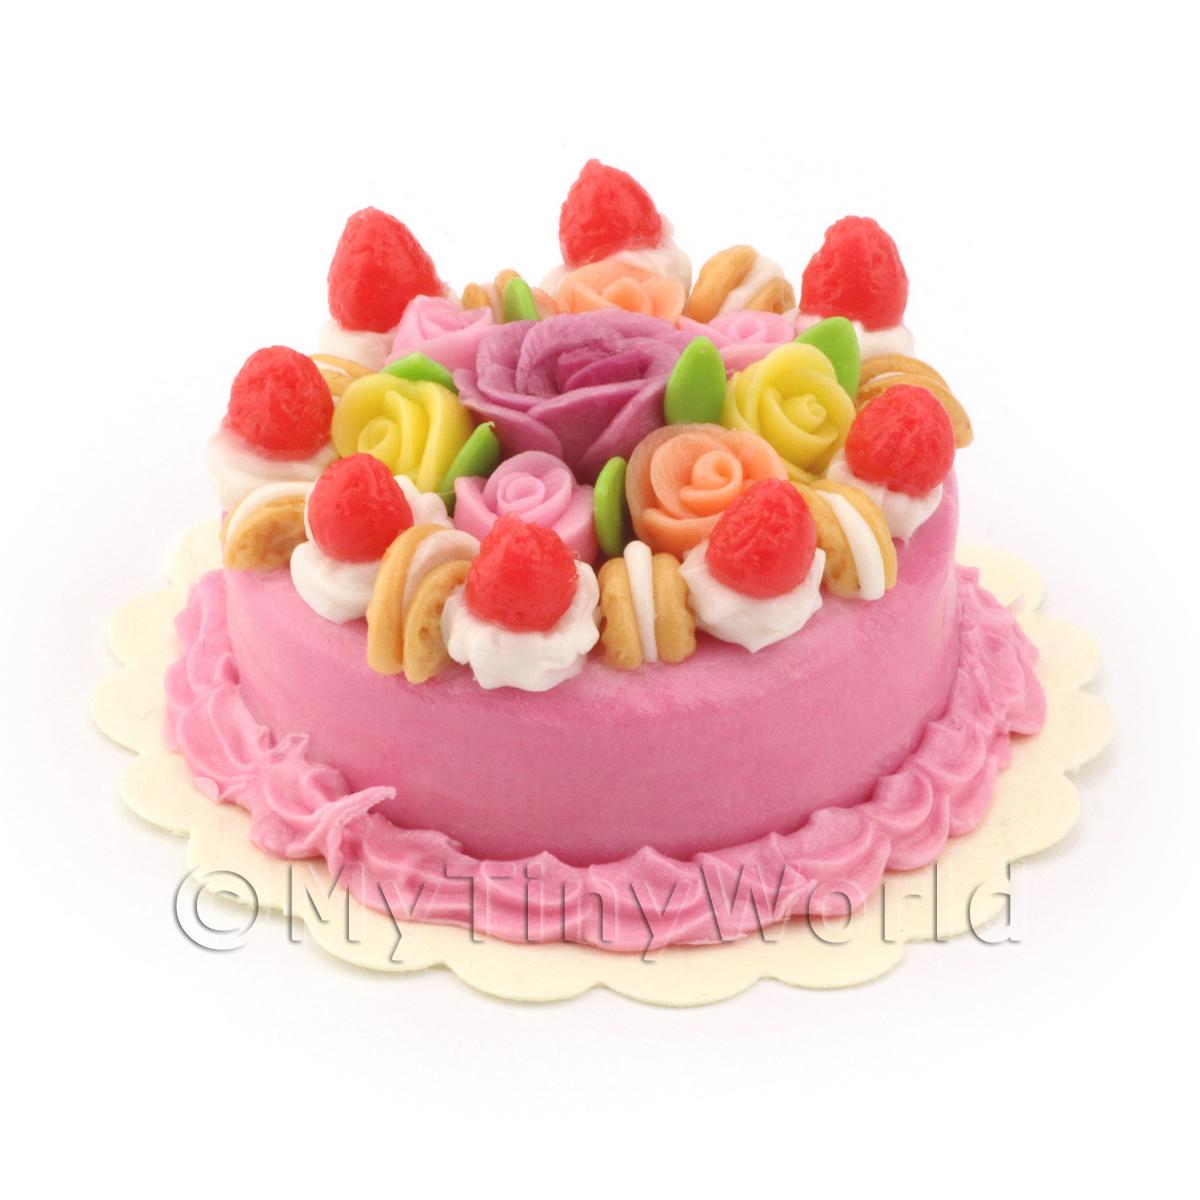 Dolls House Miniature Rose Gateaux